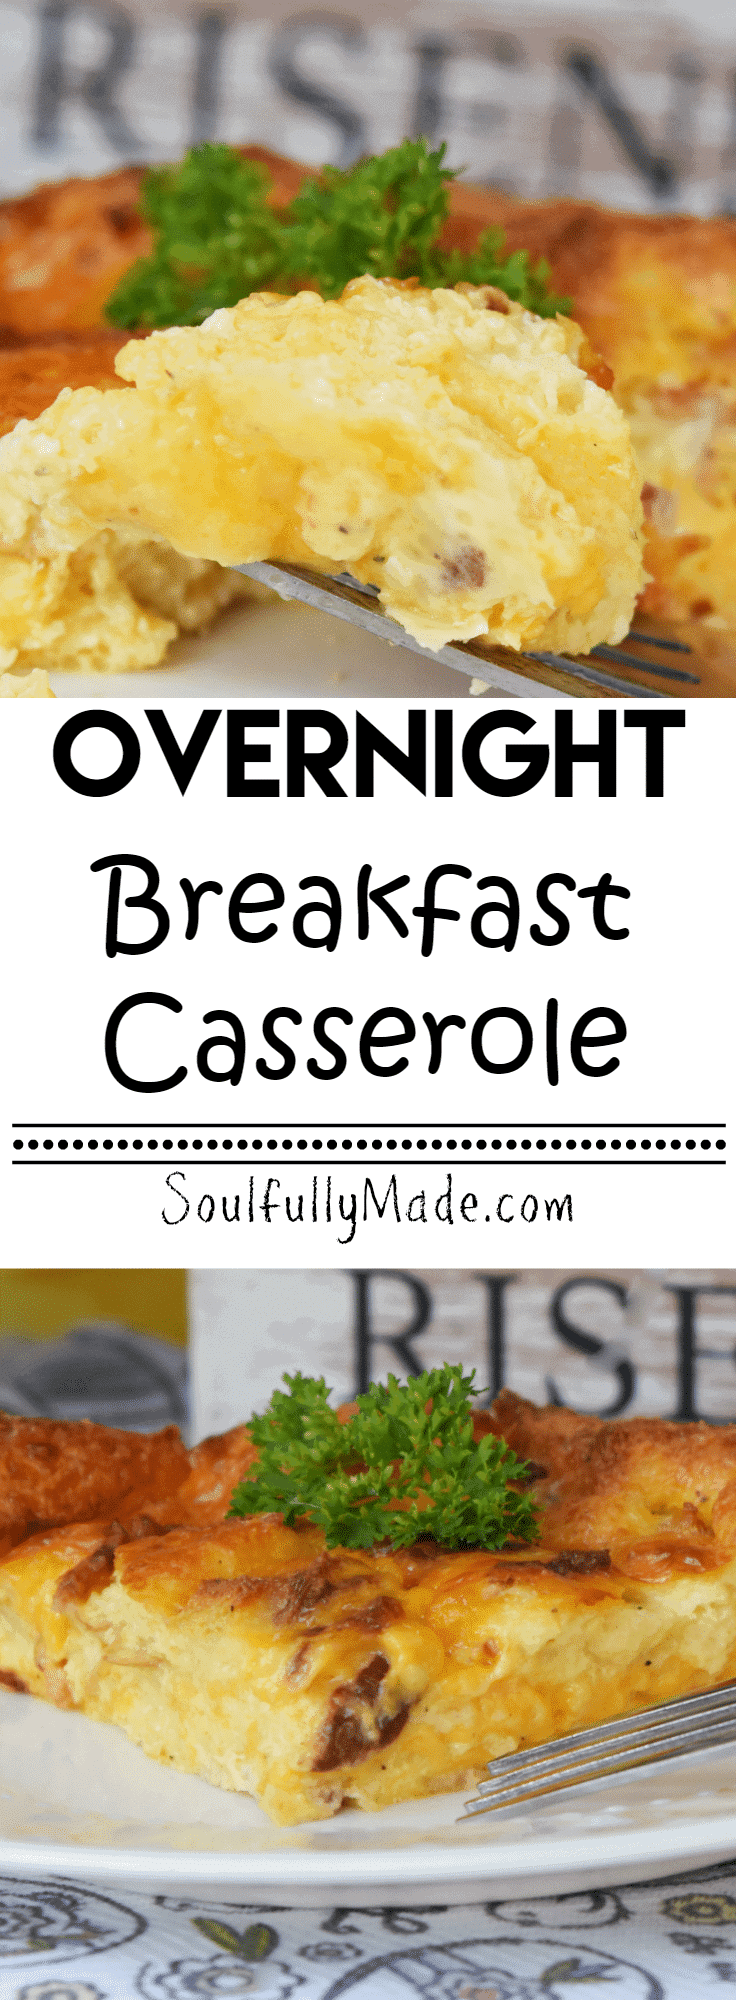 Overnight Breakfast Casserole Pin